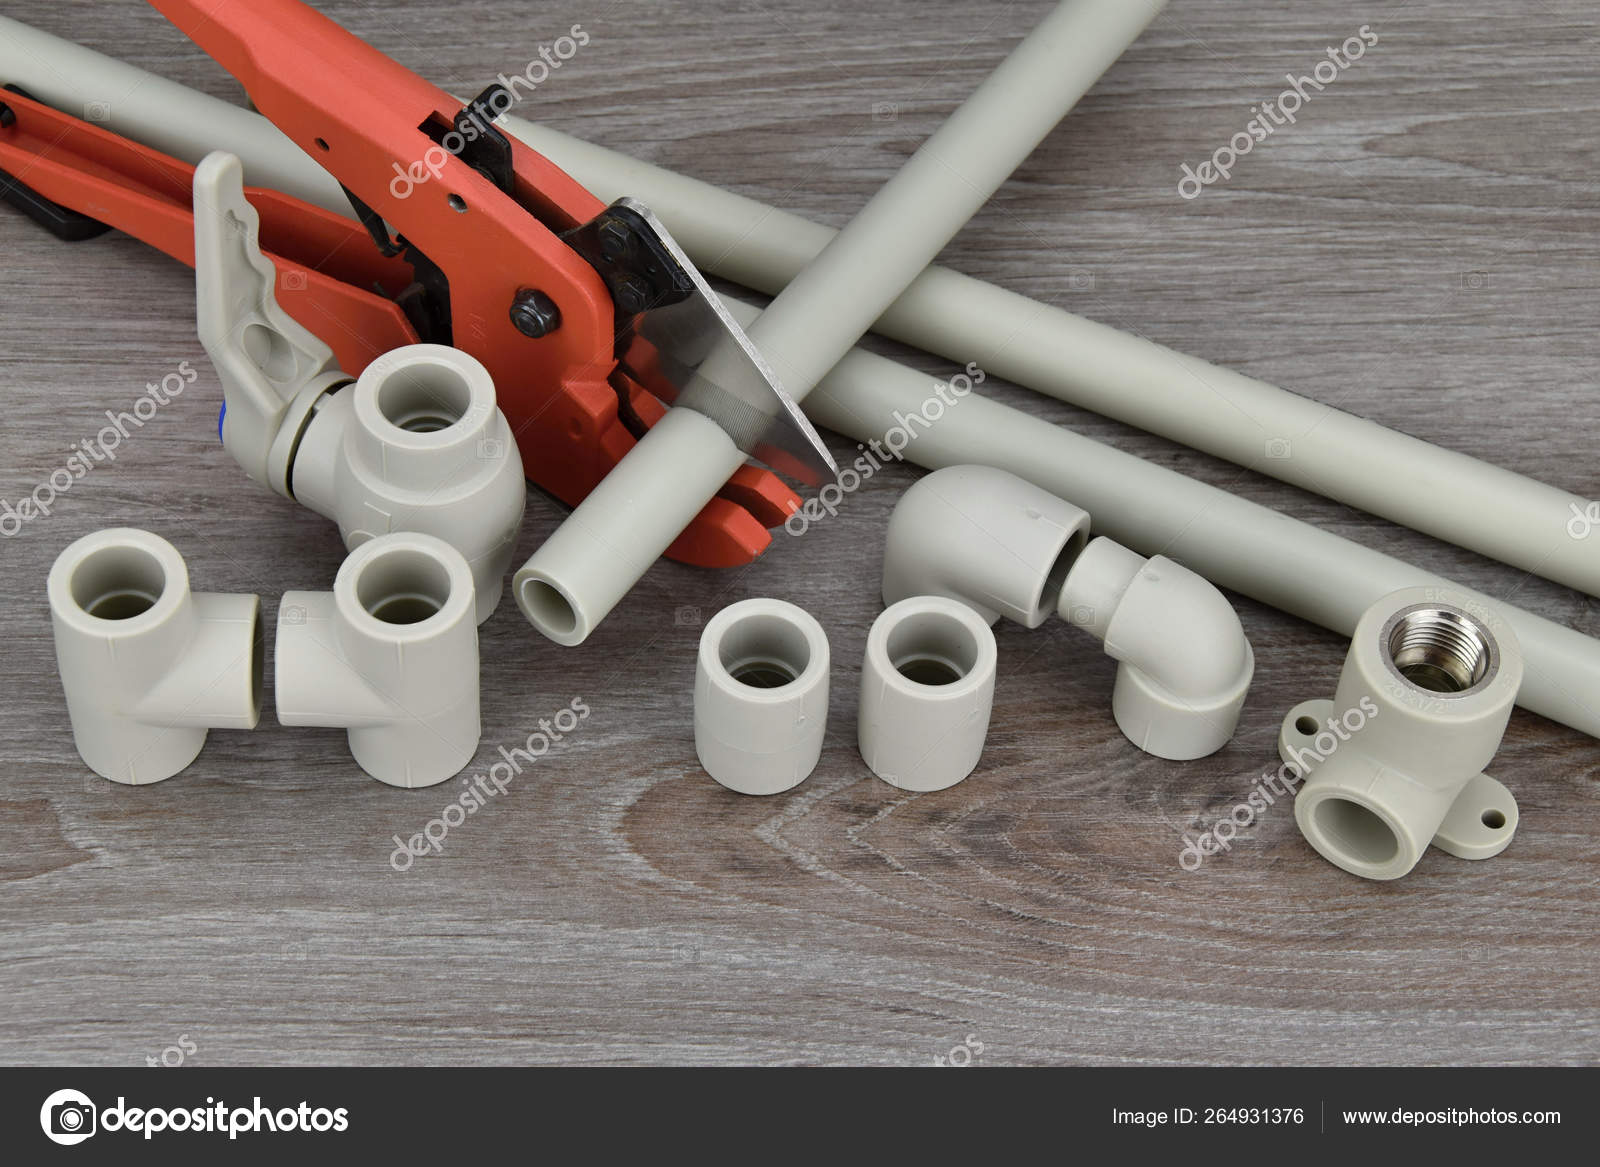 Components making water pipes and special scissors for